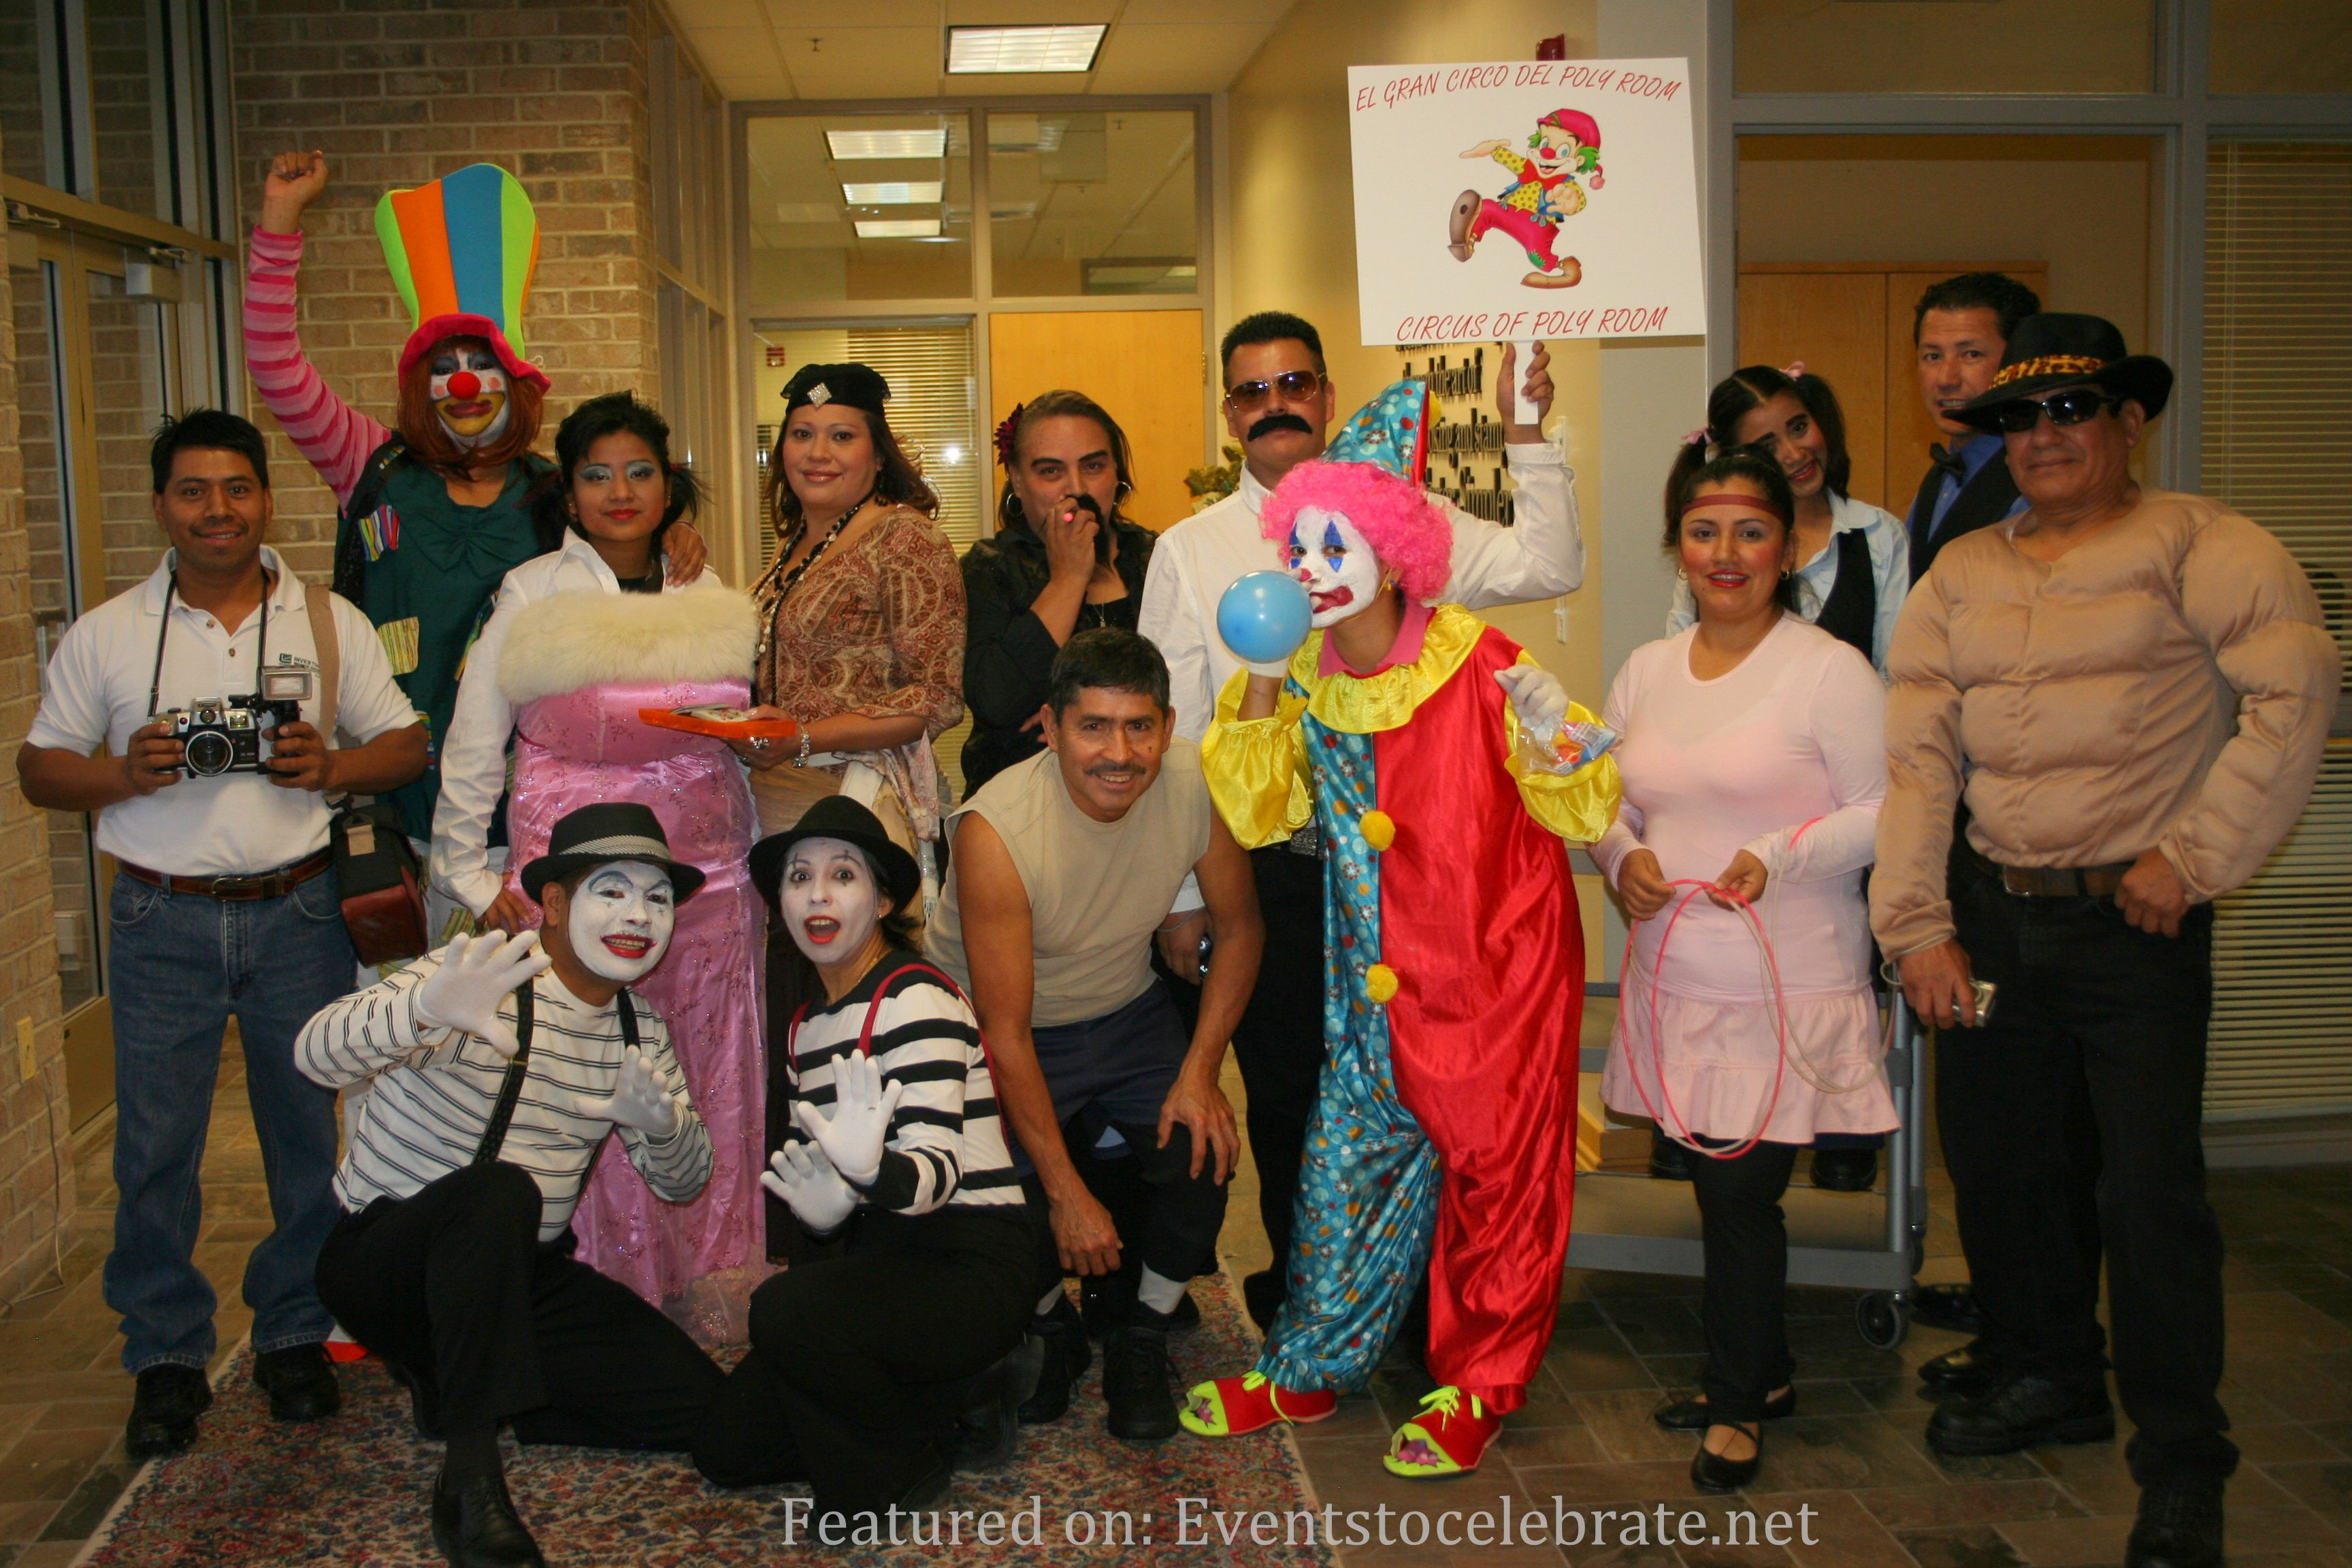 Costume ideas for groups - From Spooky To Comical Here Are Dozens Of Group Halloween Costume Ideas For Couples Families Groups Of Friends Or Coworkers To Use